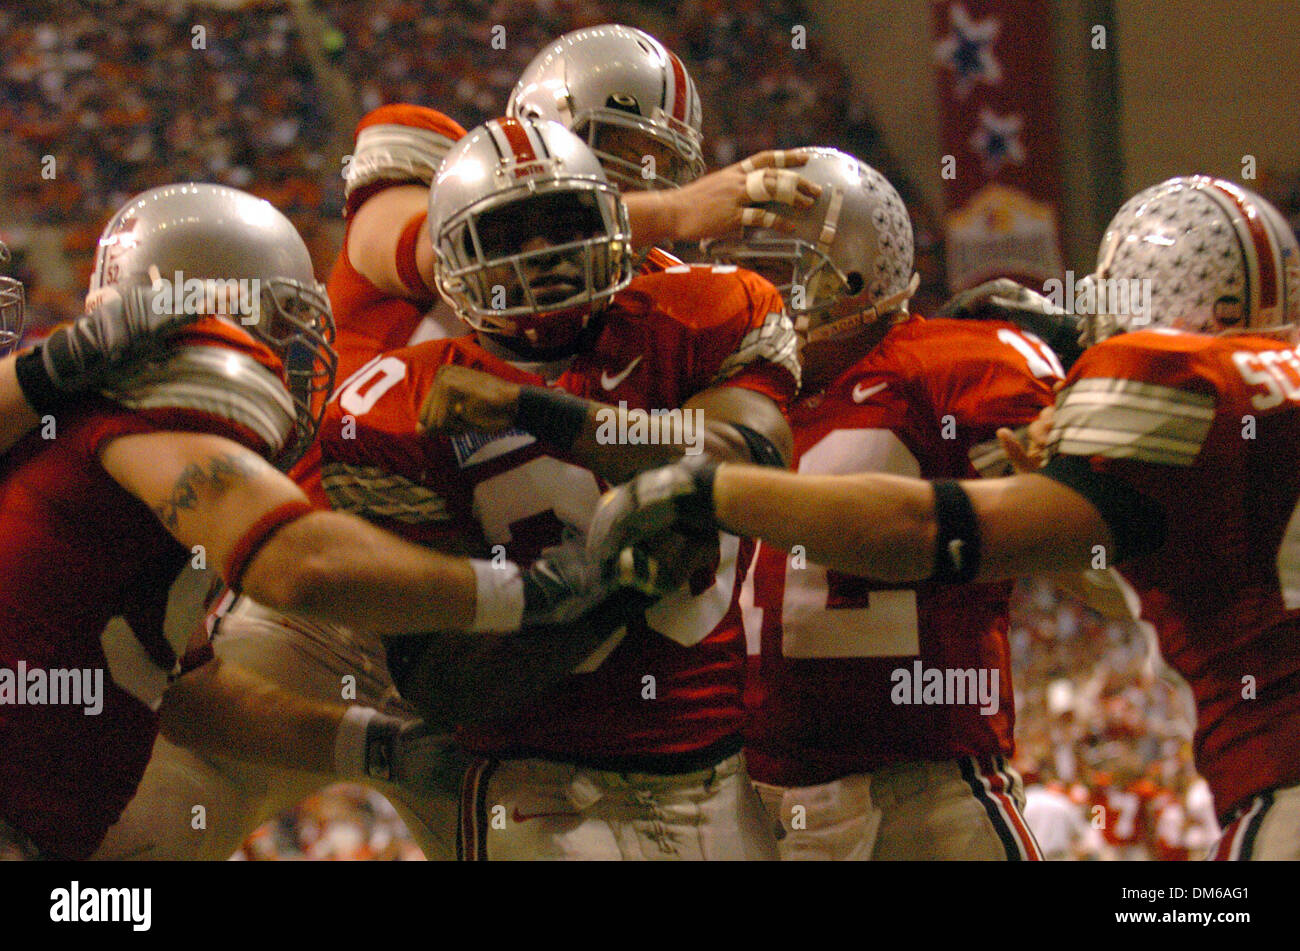 Dec 29, 2004; San Antonio, TX, USA; NCAA Football- Ohio State's Lydell Ross (30) is congratulated after scoring their second touchdown during the 2004 MasterCard Alamo Bowl at the Alamo dome in San Antonio. - Stock Image